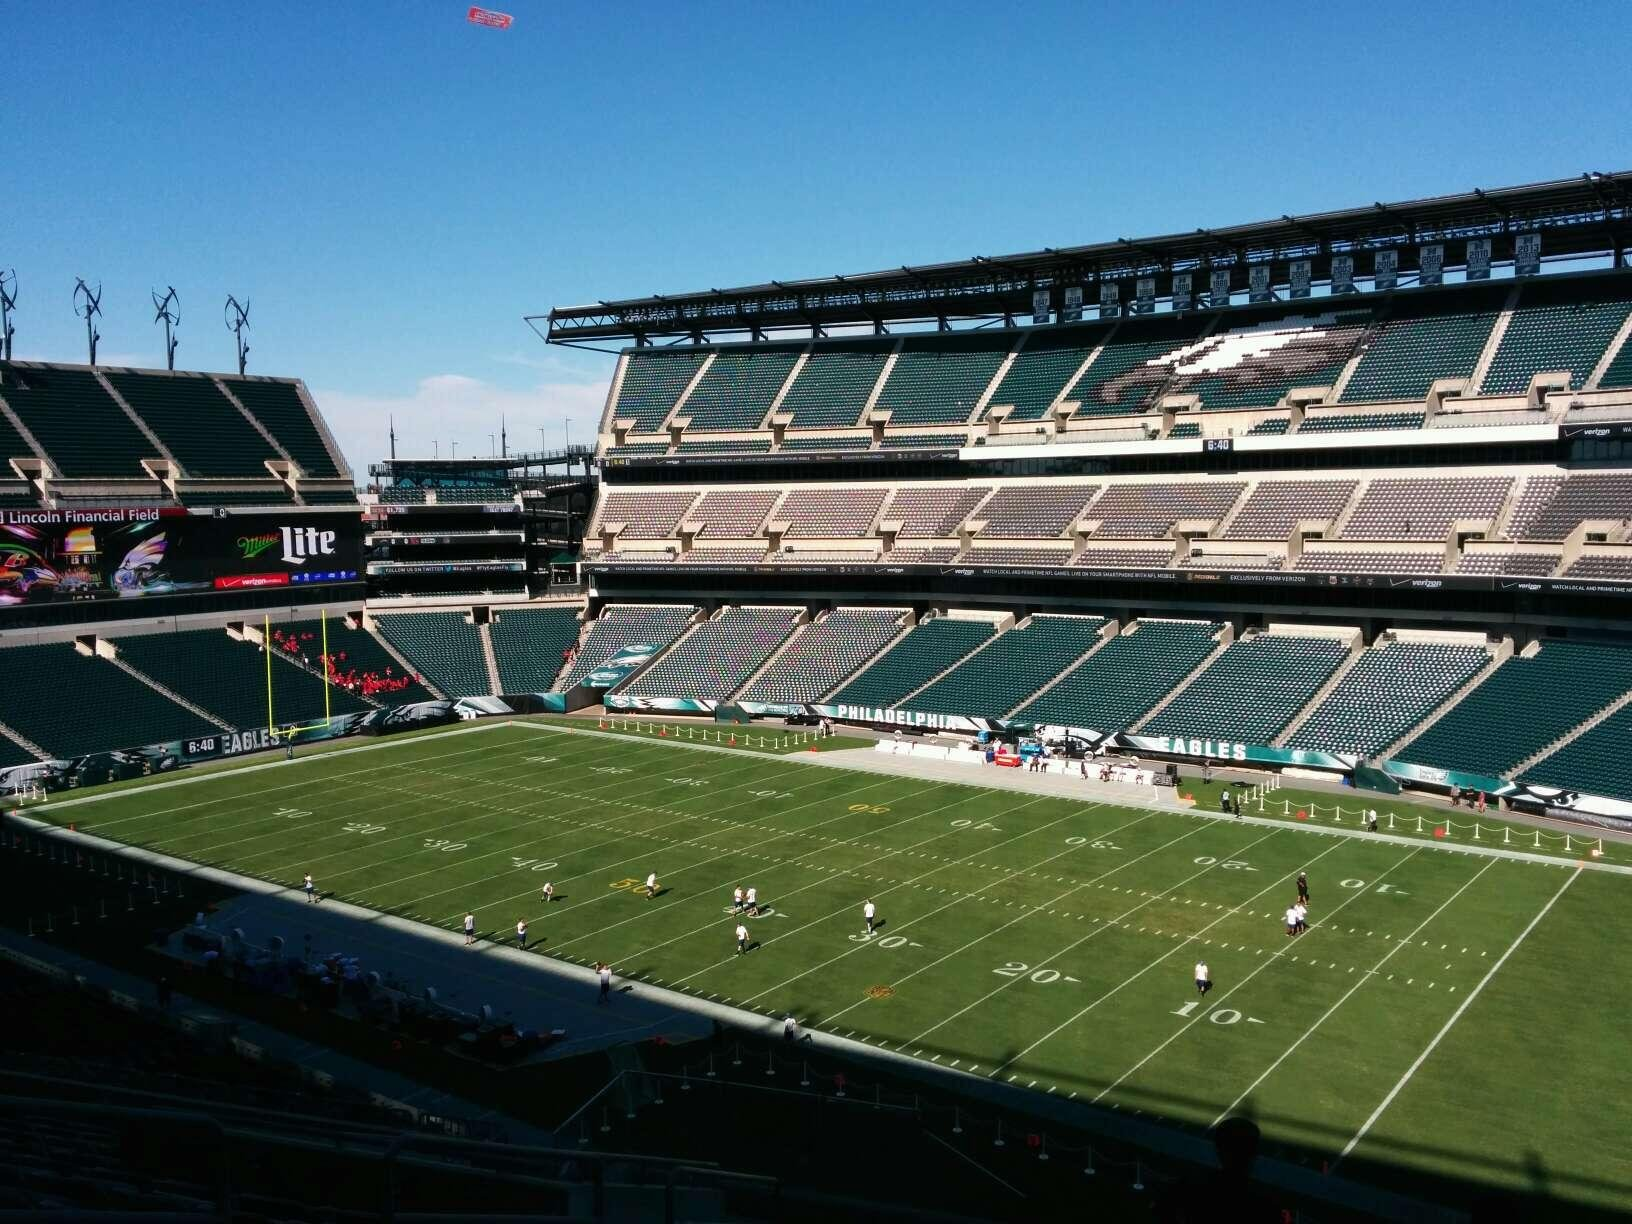 Lincoln Financial Field Section c5 Row 18 Seat 16